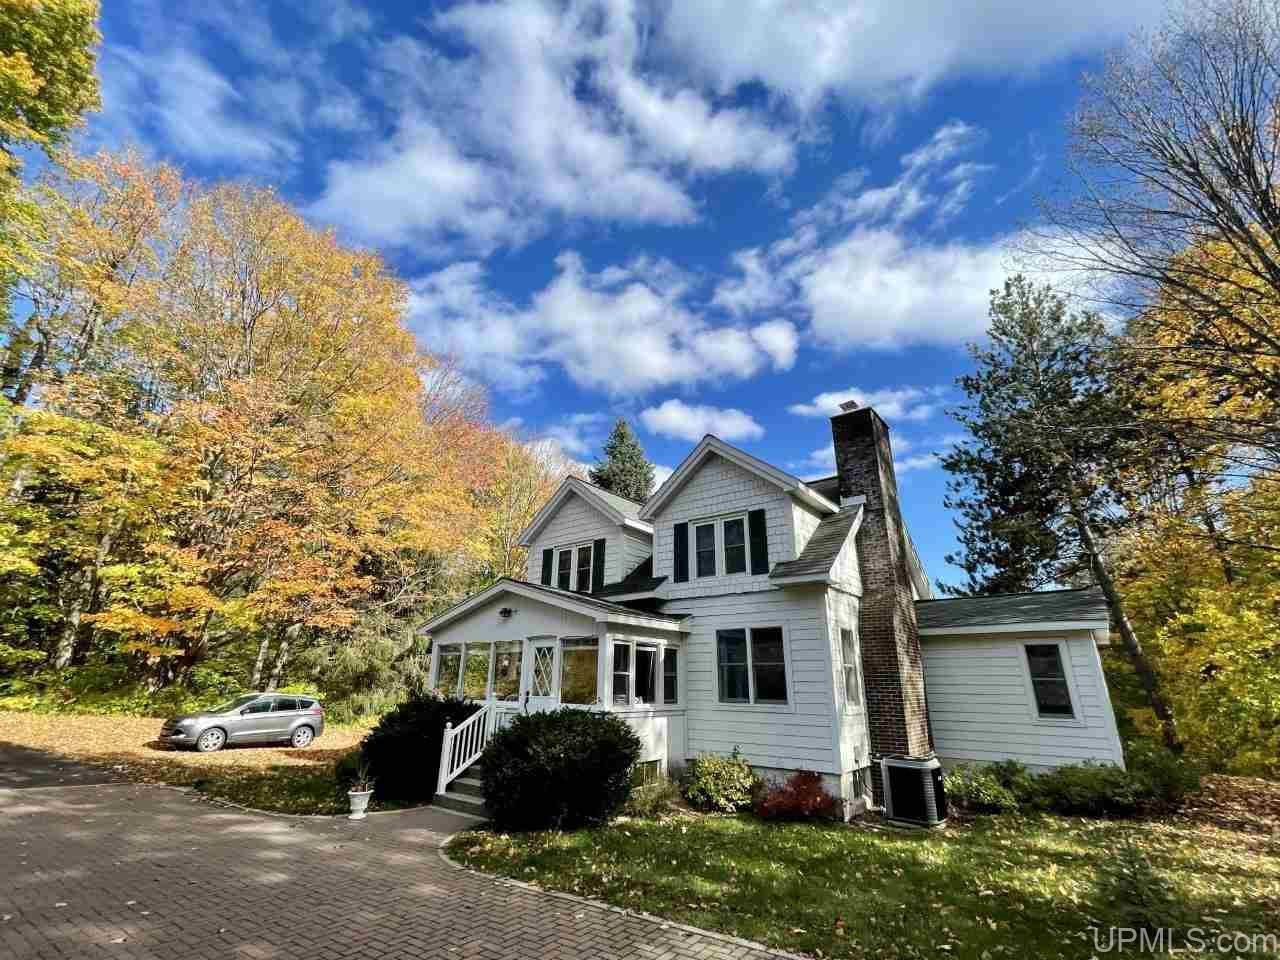 Photo of 51780 Canal, Houghton, MI 49931-9796 (MLS # 1130477)